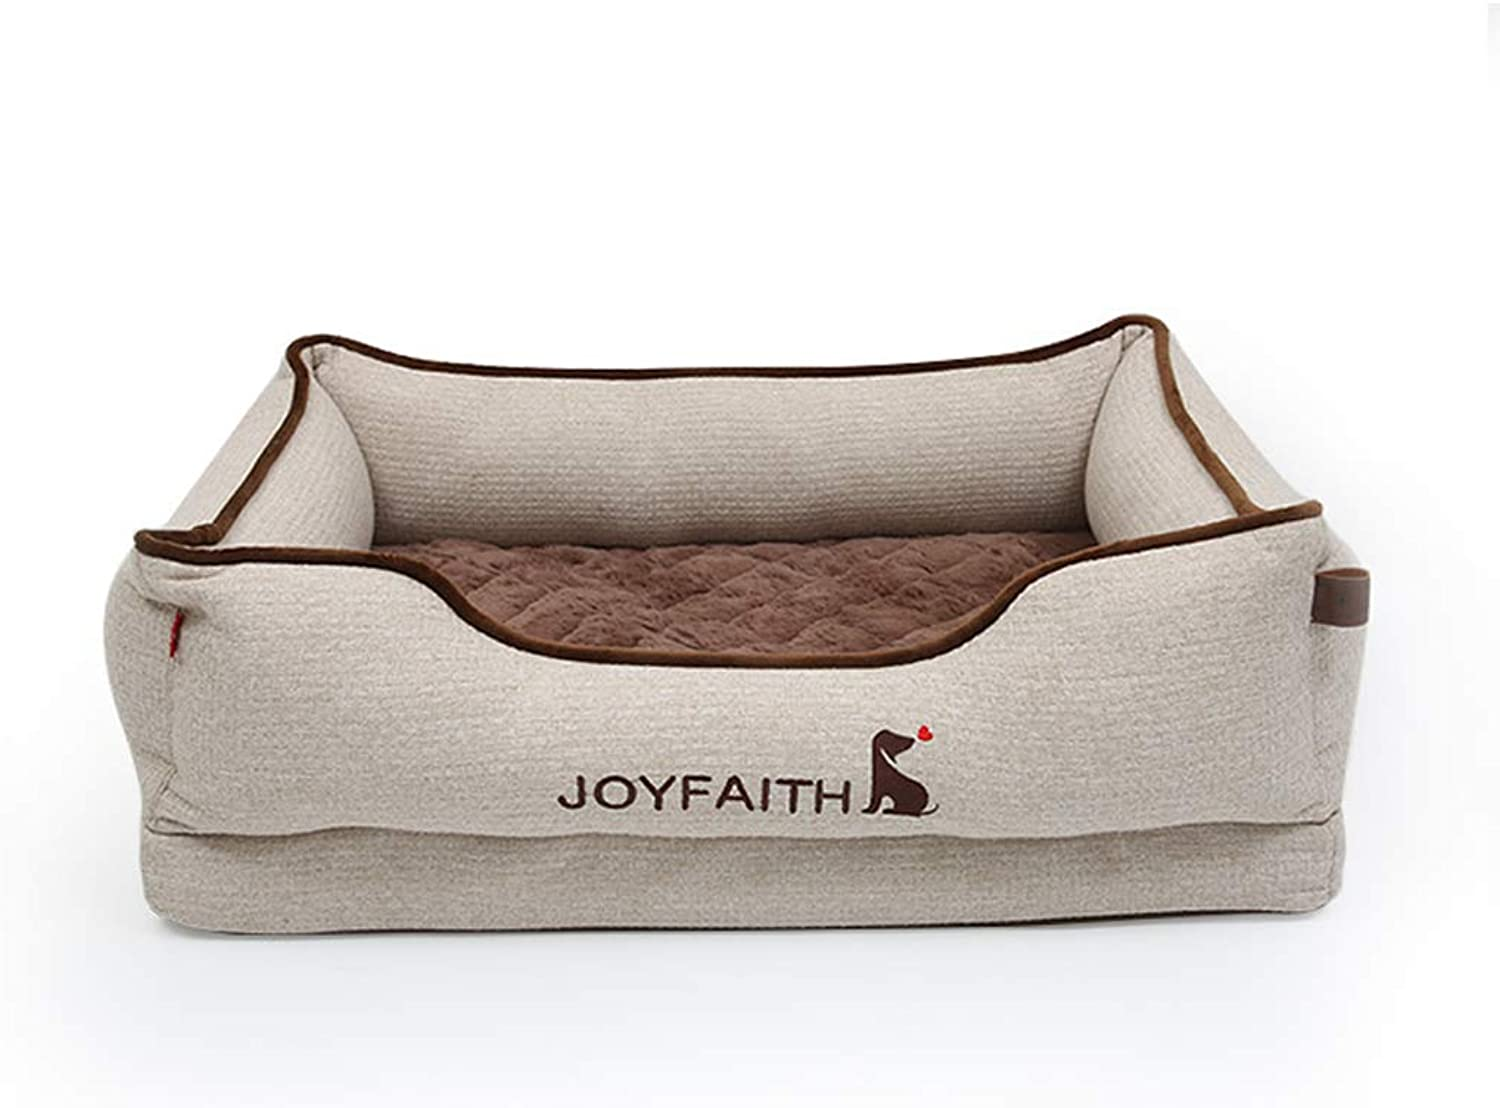 Jlxl Dog Bed, Winter Soft Kennel Small Dog Removable Mattress Pet Teddy Sized For Four Seasons Warm Pillow (color   White, Size   S.70x50x23cm)